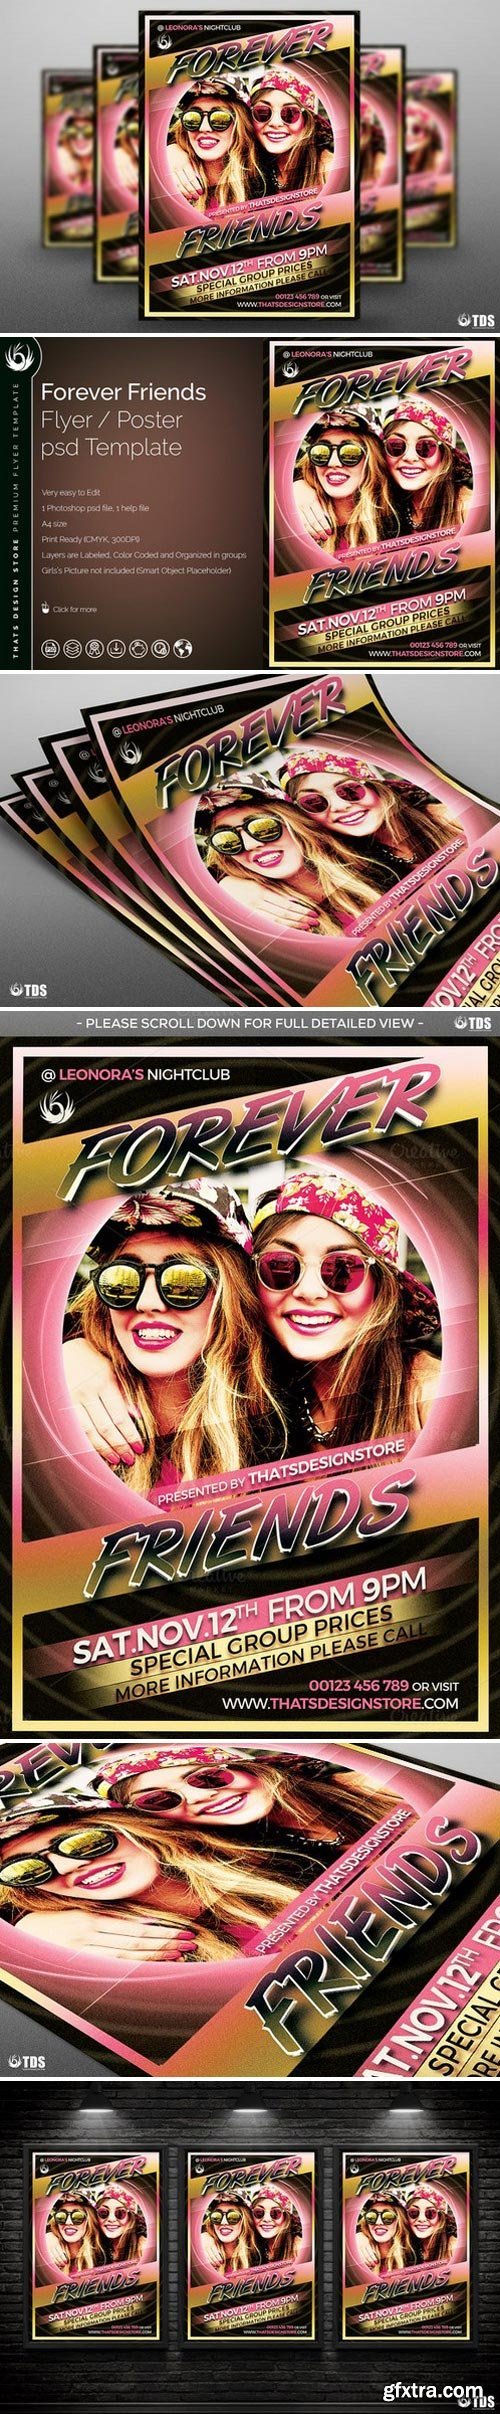 CM - Forever Friends Flyer Template 792498